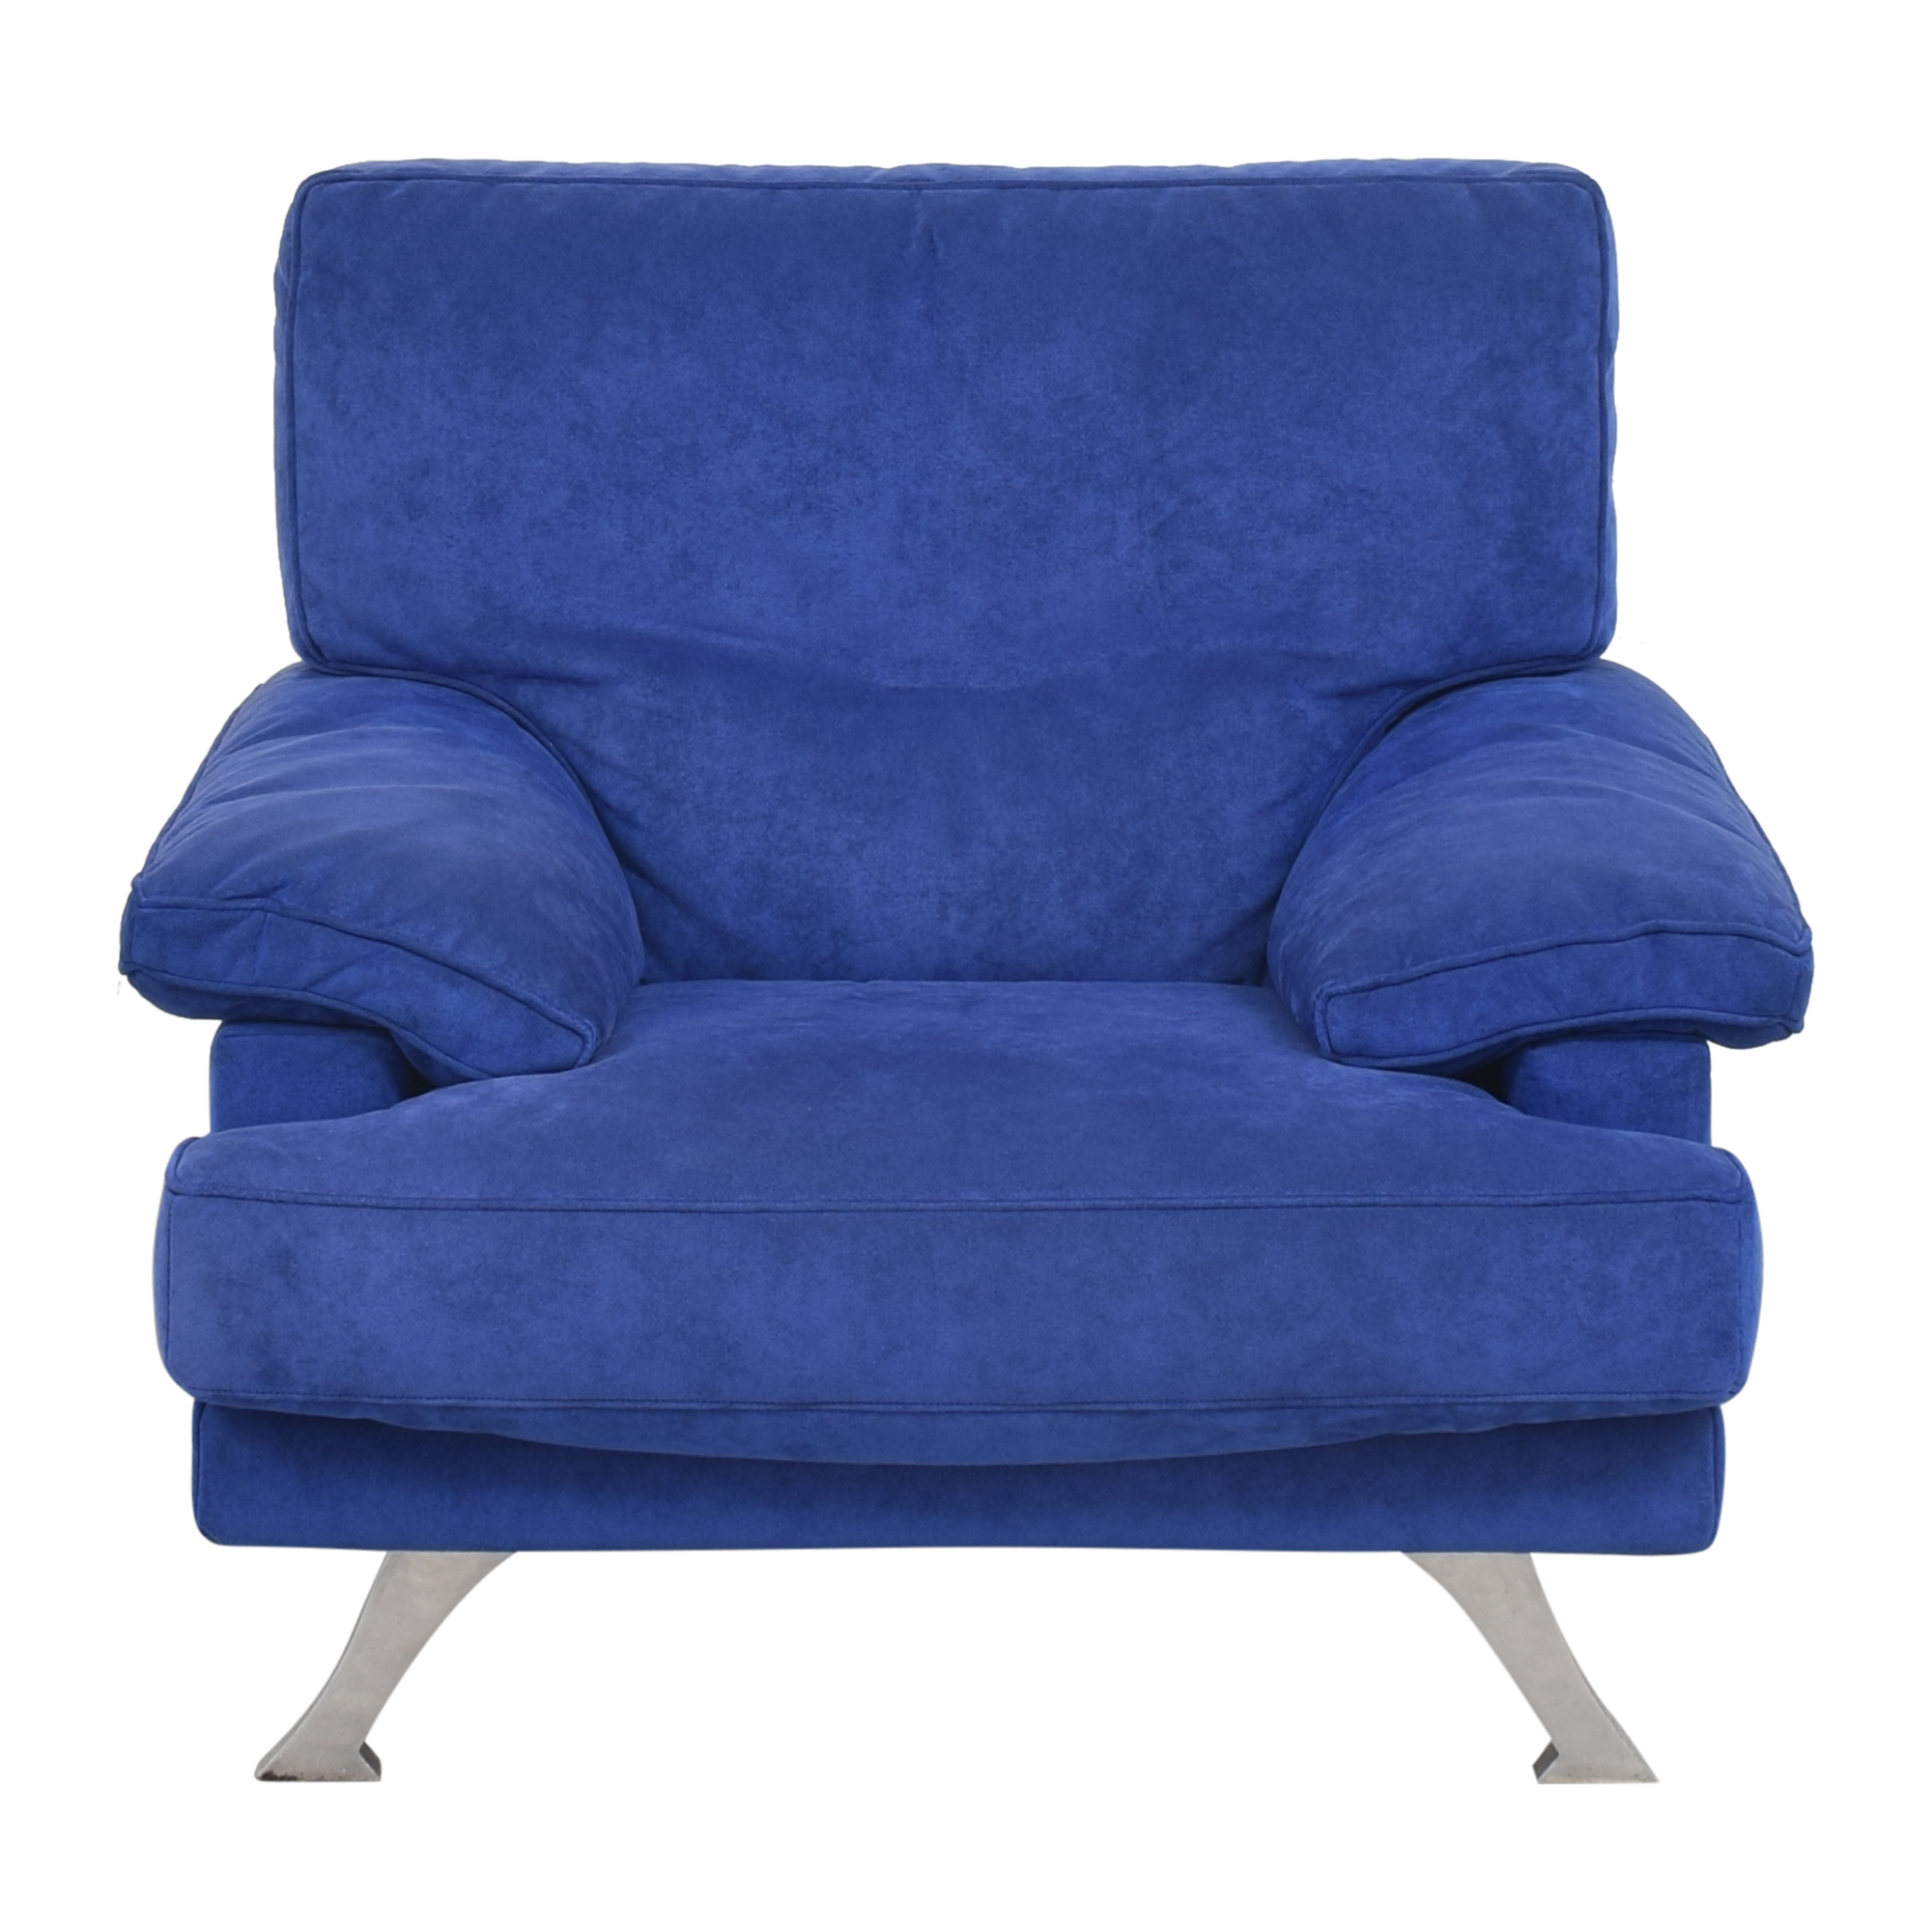 Ligne Roset Ligne Roset Lounge Chair coupon